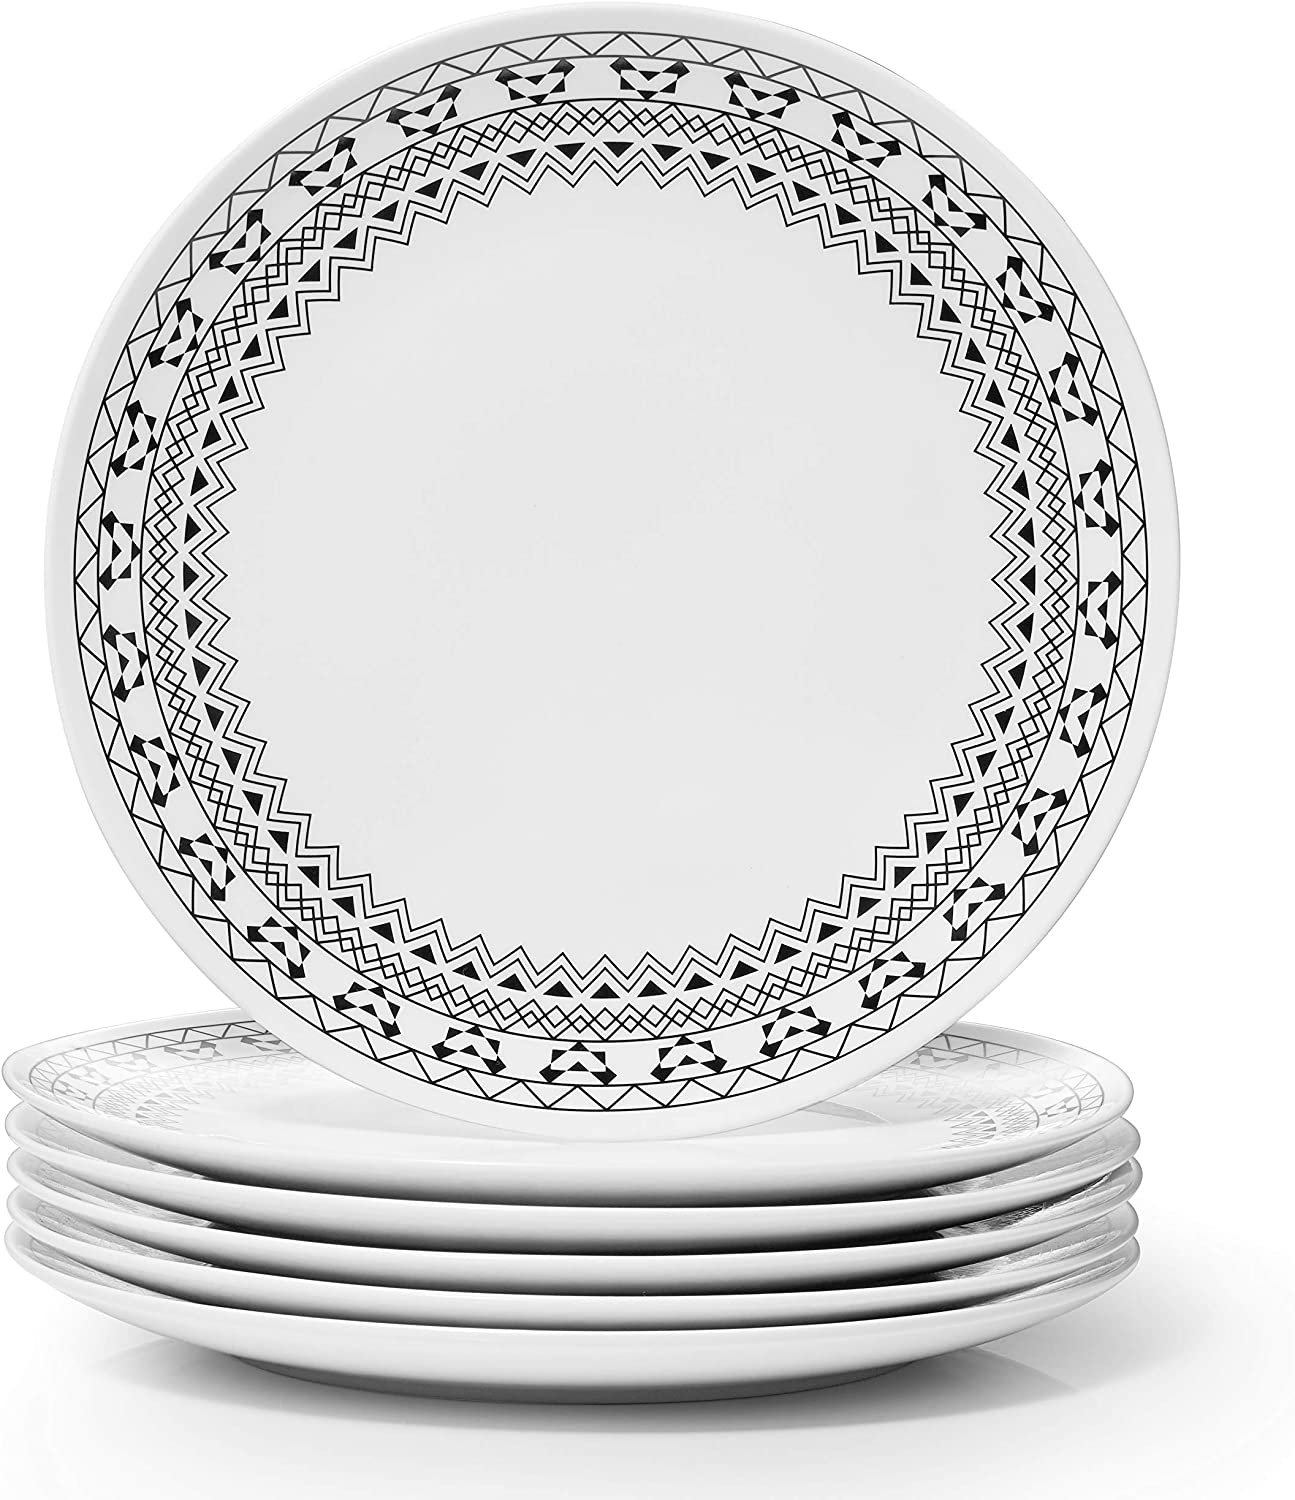 Dowan Serving Plates, 10 Inch Salad Dinner Plates, Ceramic Serving Platters for Appetizer Dessert Pancake Side Dish, Dishwasher Safe, Christmas Party Restaurant Use, Bohemian Style Gift, Set of 6